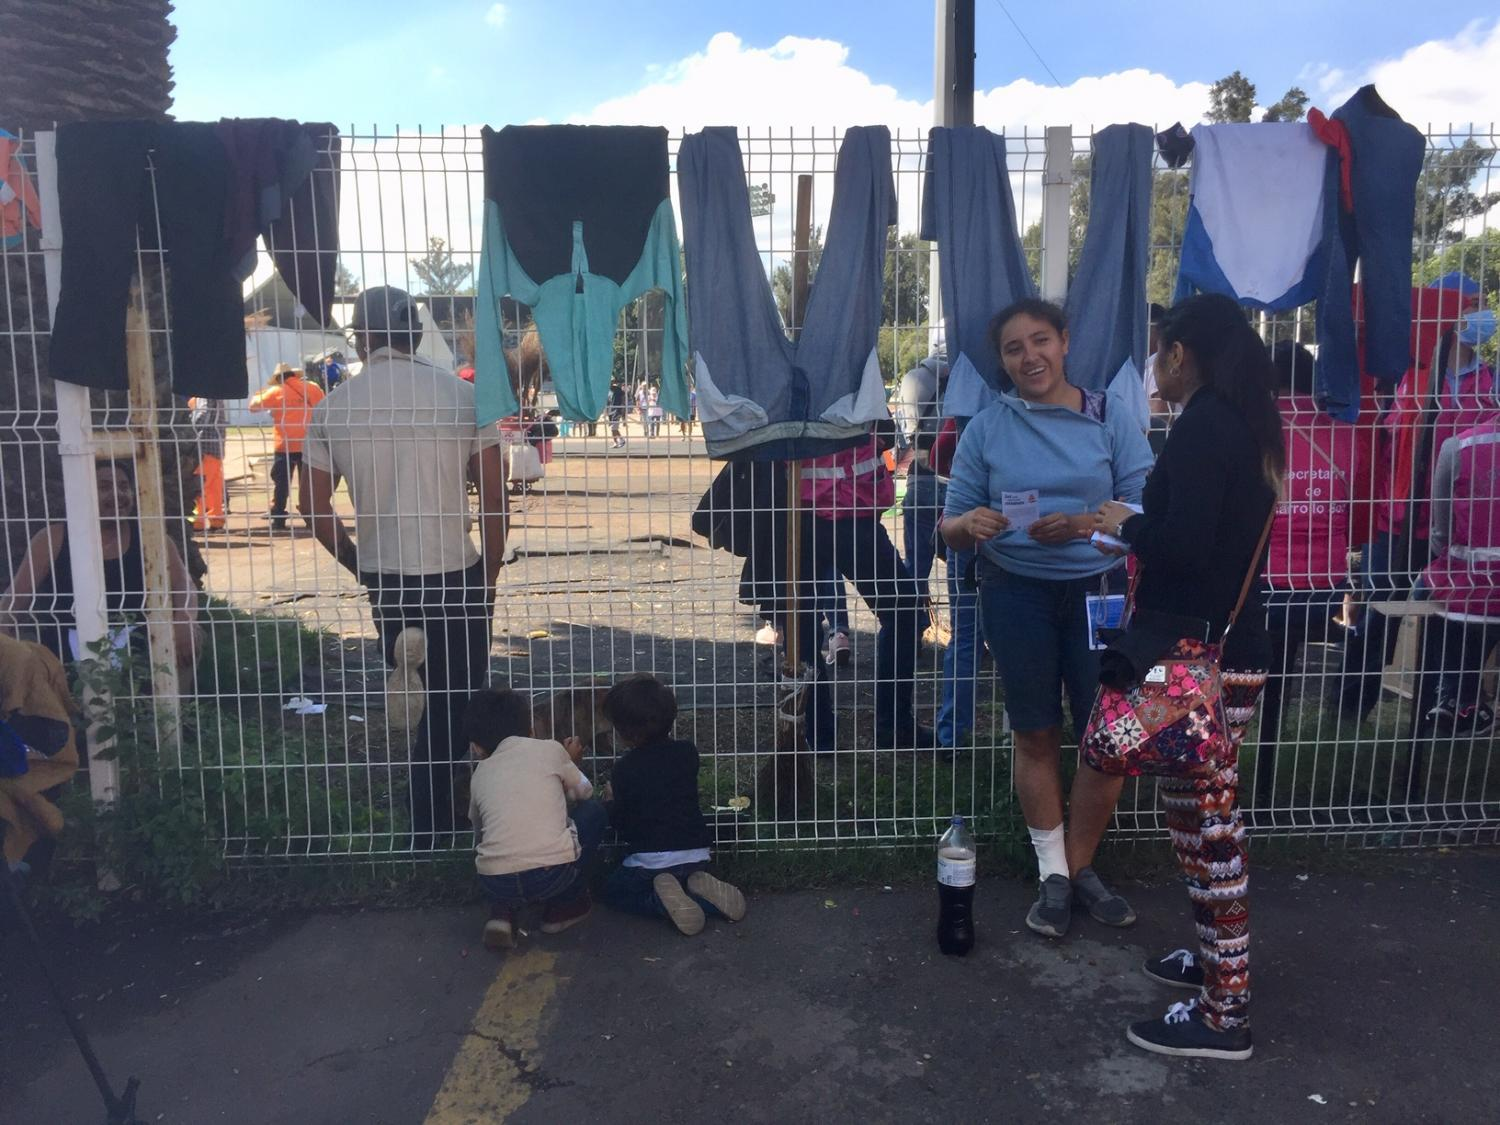 Migrants wait and dry clothes at the gate of the shelter in Mexico City.